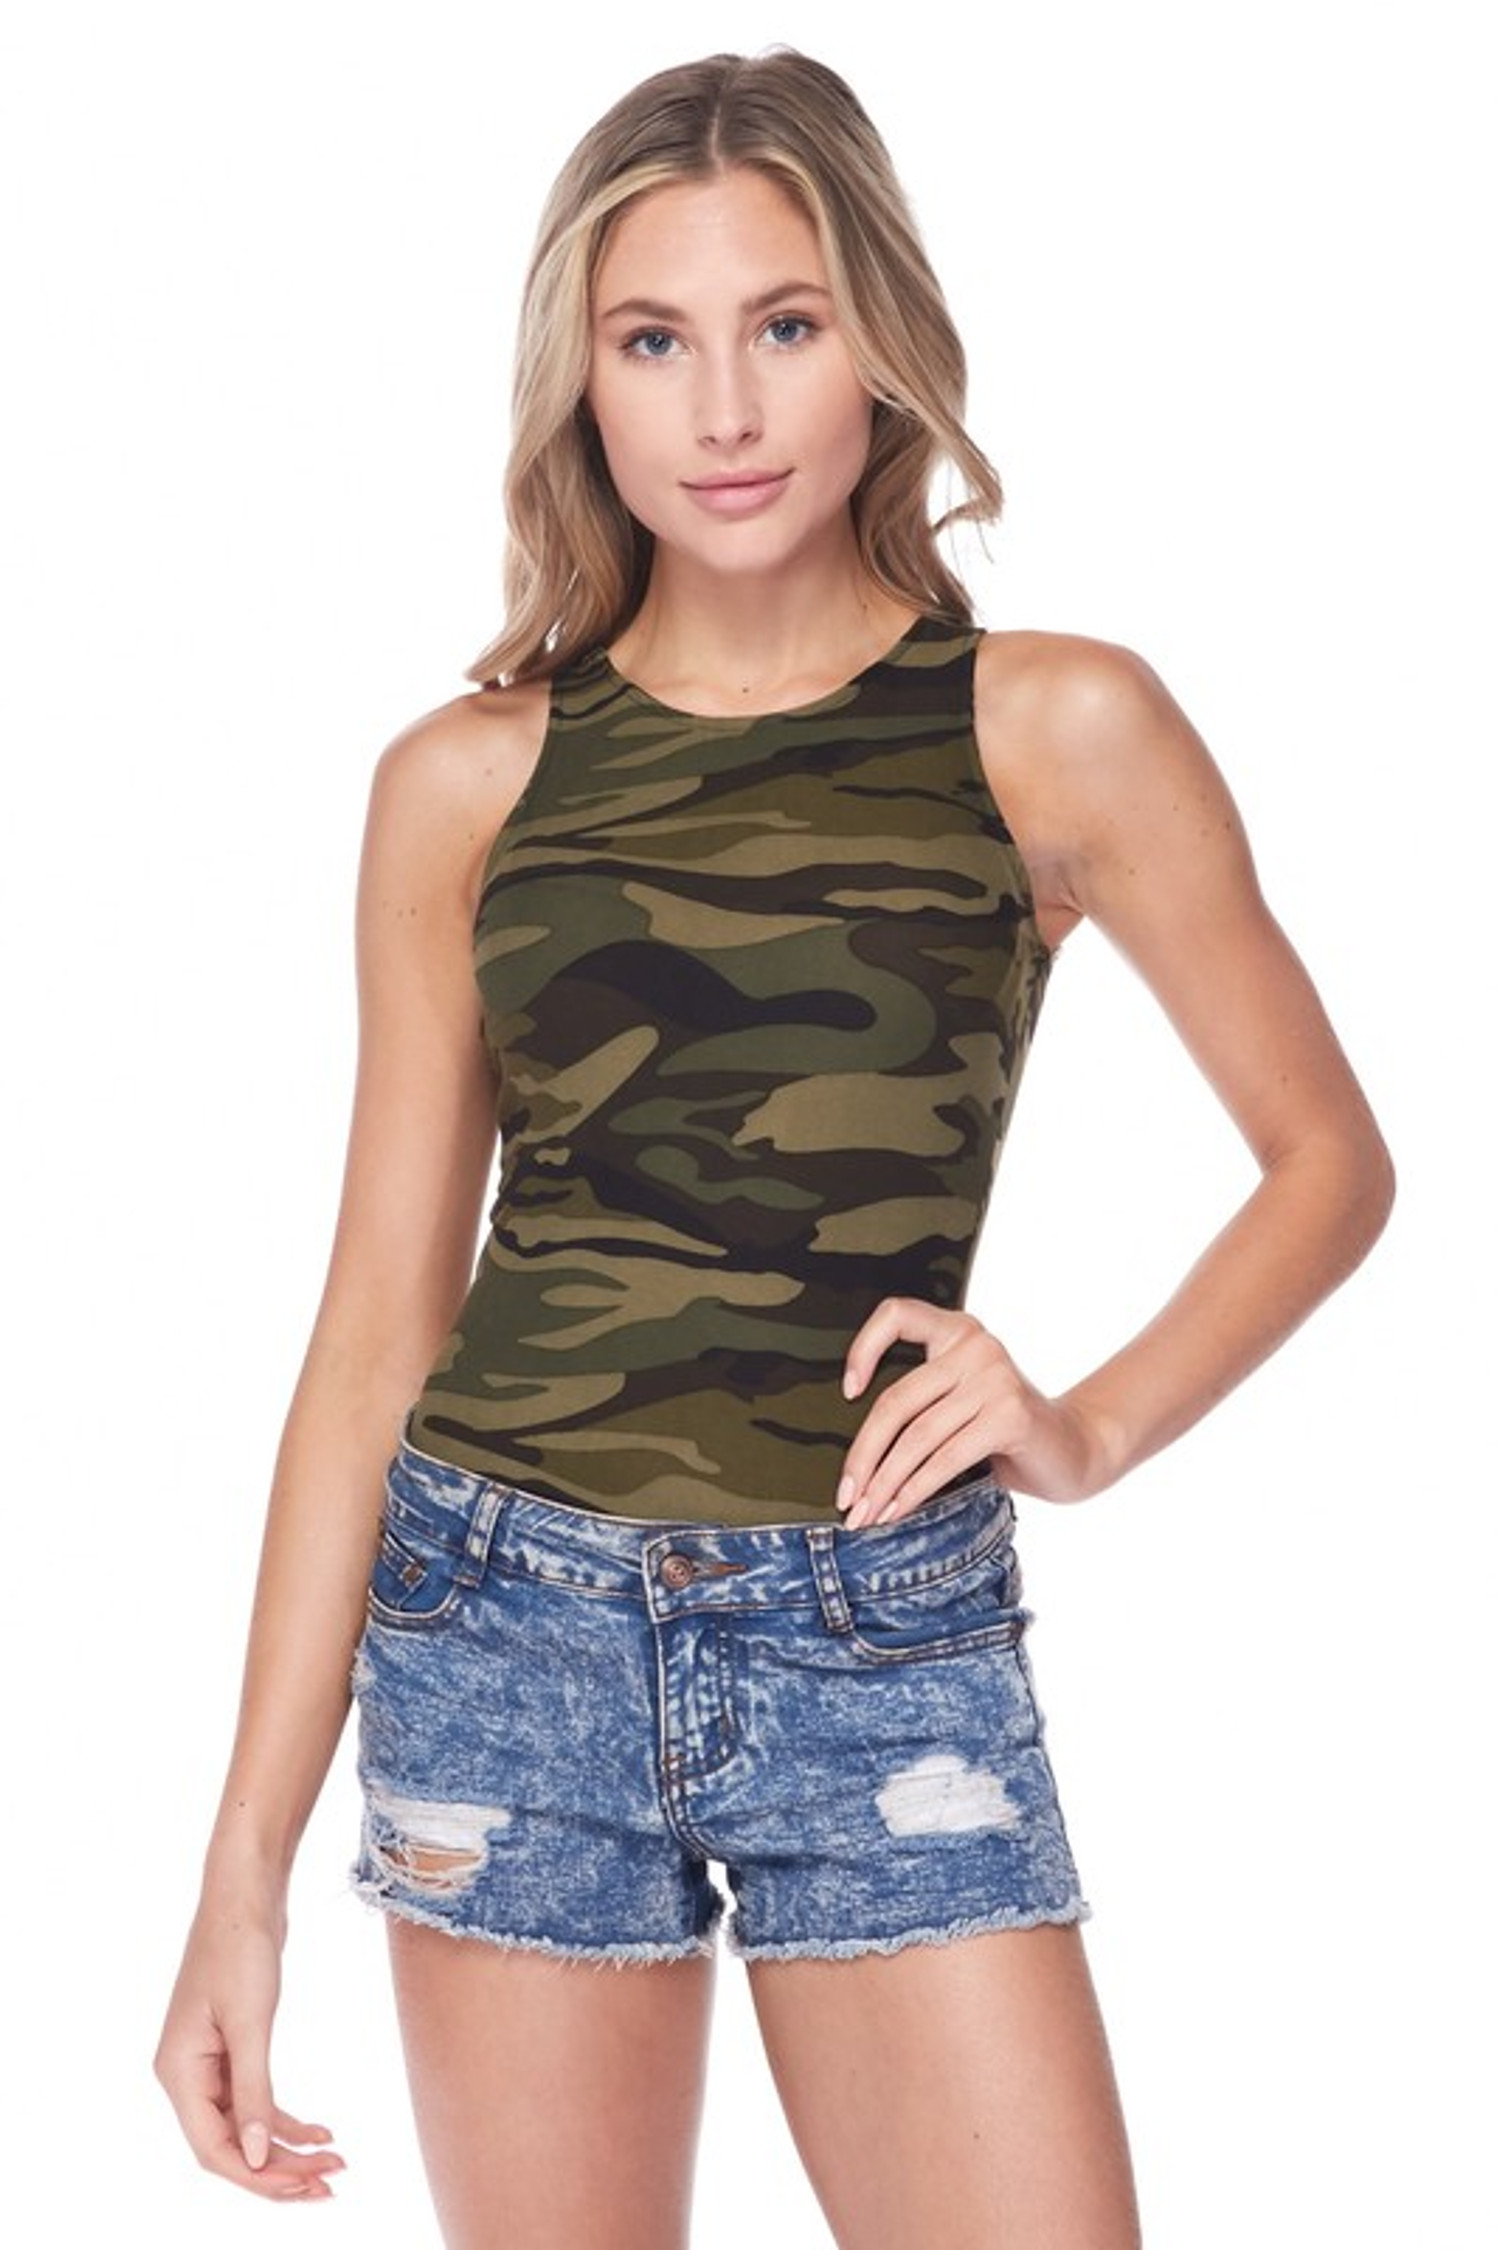 Front of Brushed Green Camouflage Mock Neck Bodysuit with a trendy green army print design, shown paired with distressed denim shorts.